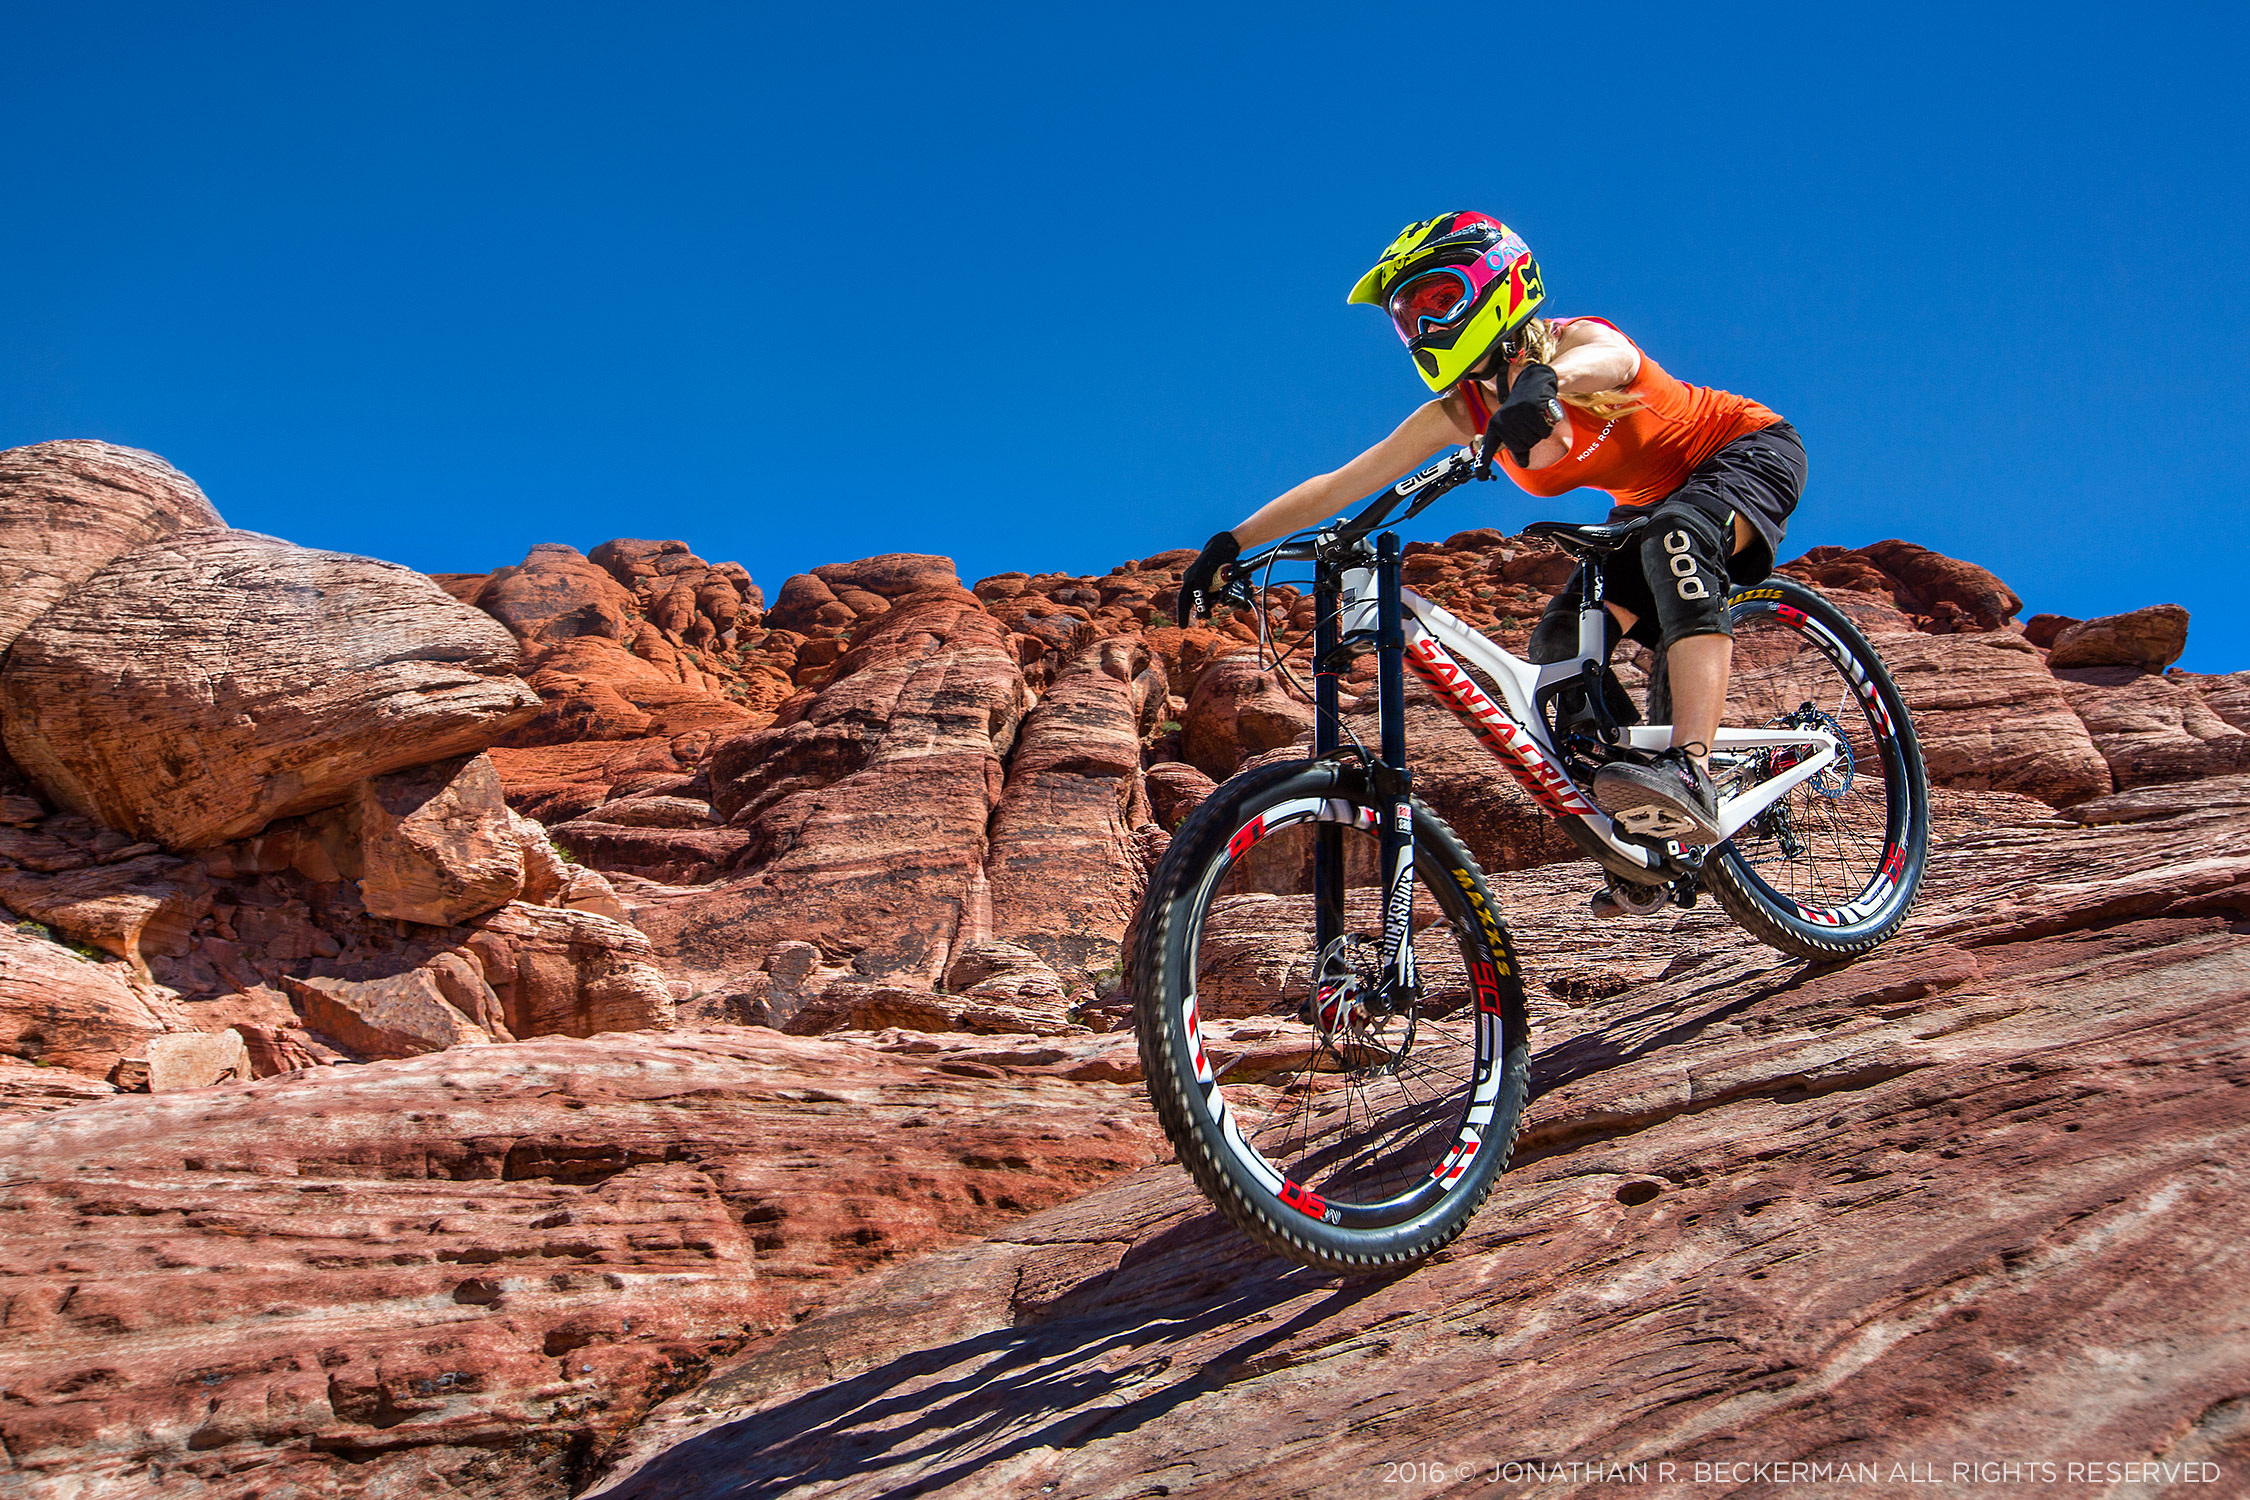 MOUNTAIN-BIKE_RED-ROCKS_NEVADA MATHIS ACTION SPORTS PORTRAIT © JONATHAN R. BECKERMAN PHOTOGRAPHY 11.jpg